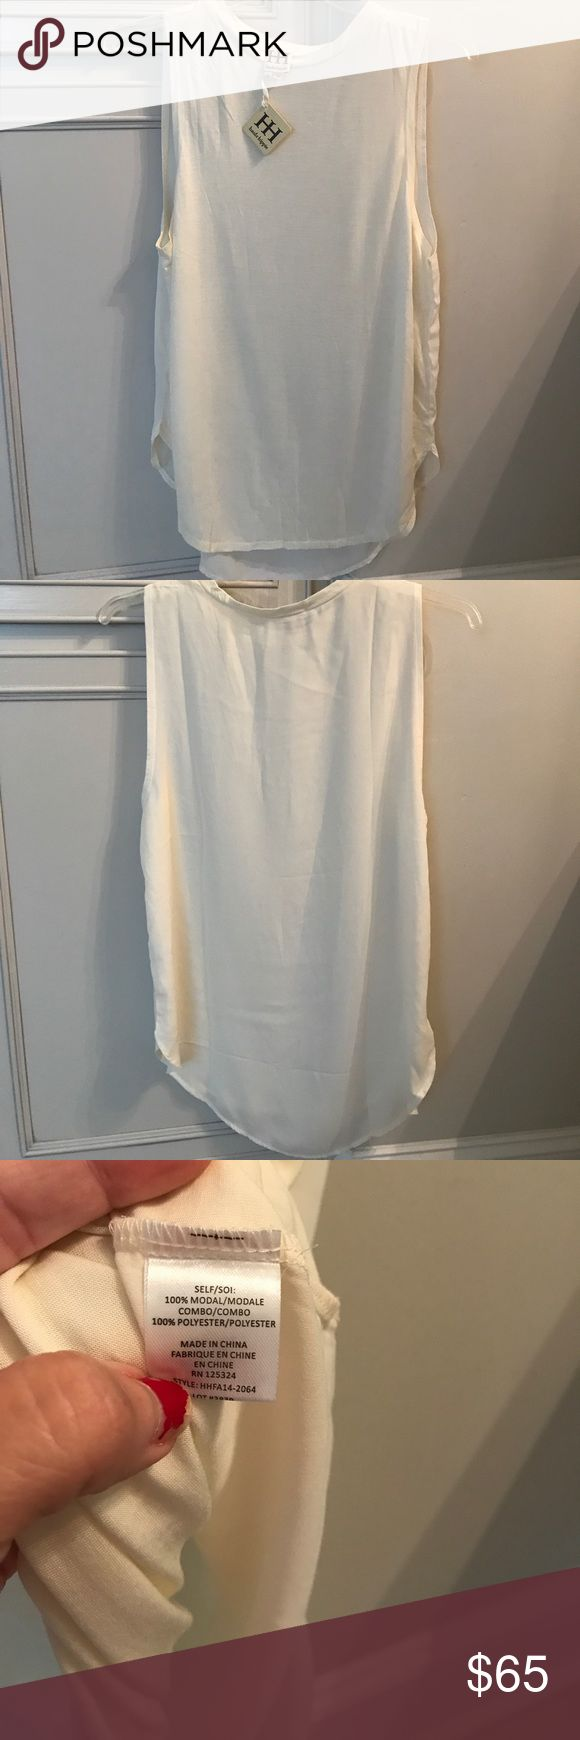 Brand new haute hippie long tank top Brand new haute hippie long tank top with tags. Never worn. (Dressy top) Haute Hippie Tops Tank Tops